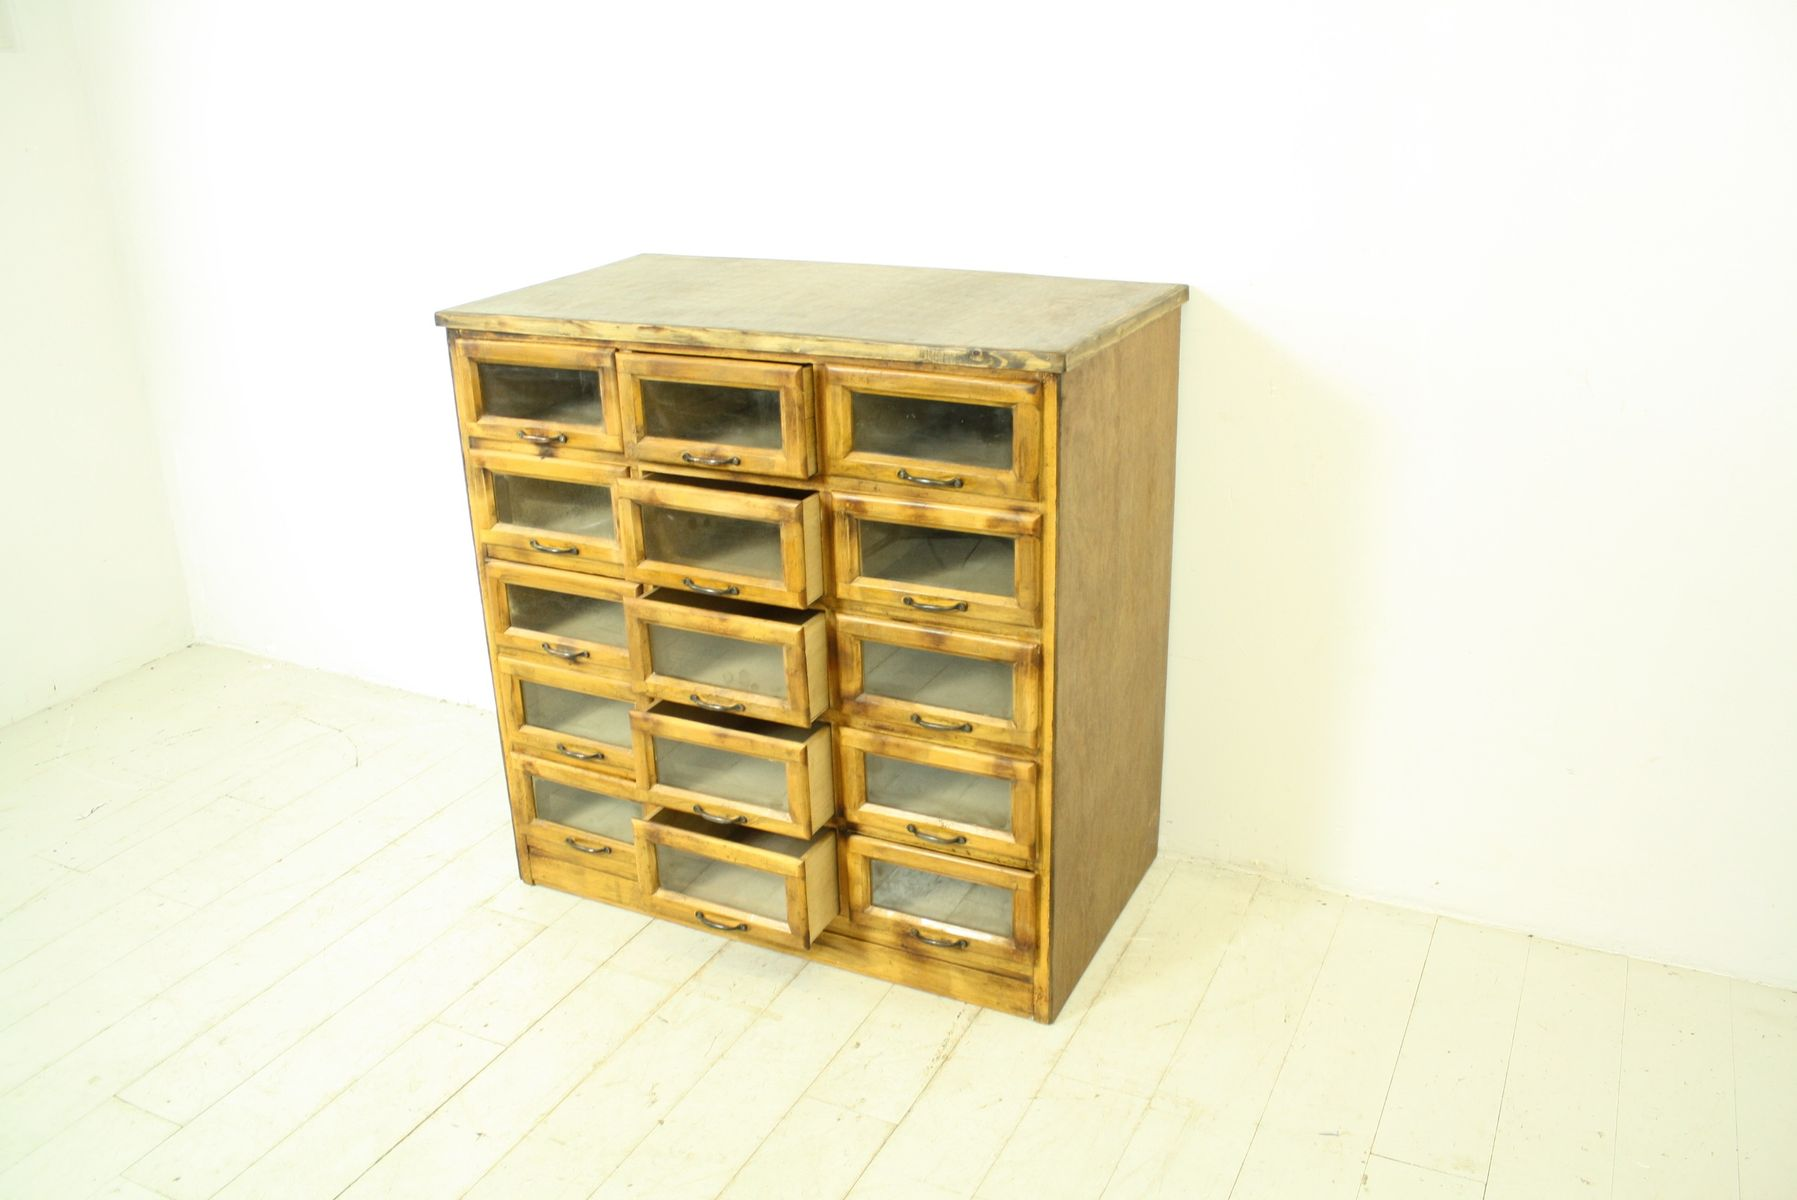 Vintage British 15 Drawer Oak Haberdashery Cabinet For Sale At Pamono